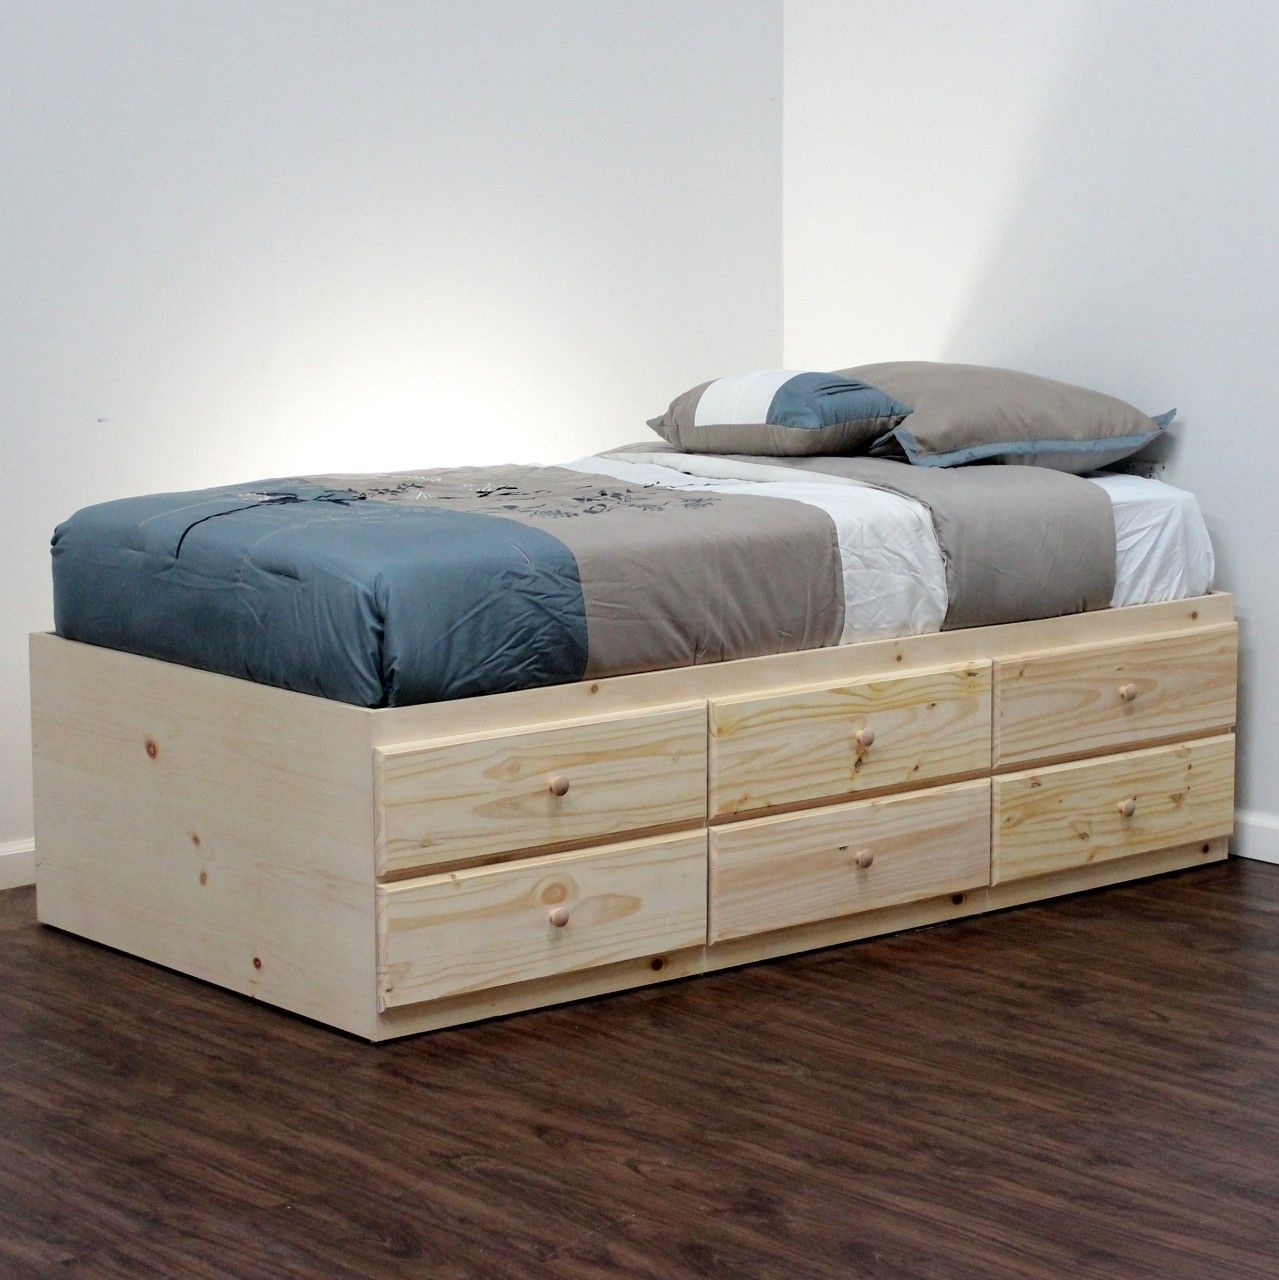 Bed frames with storage drawers - Extra Long Twin Storage Bed 6 Drawers In Pine